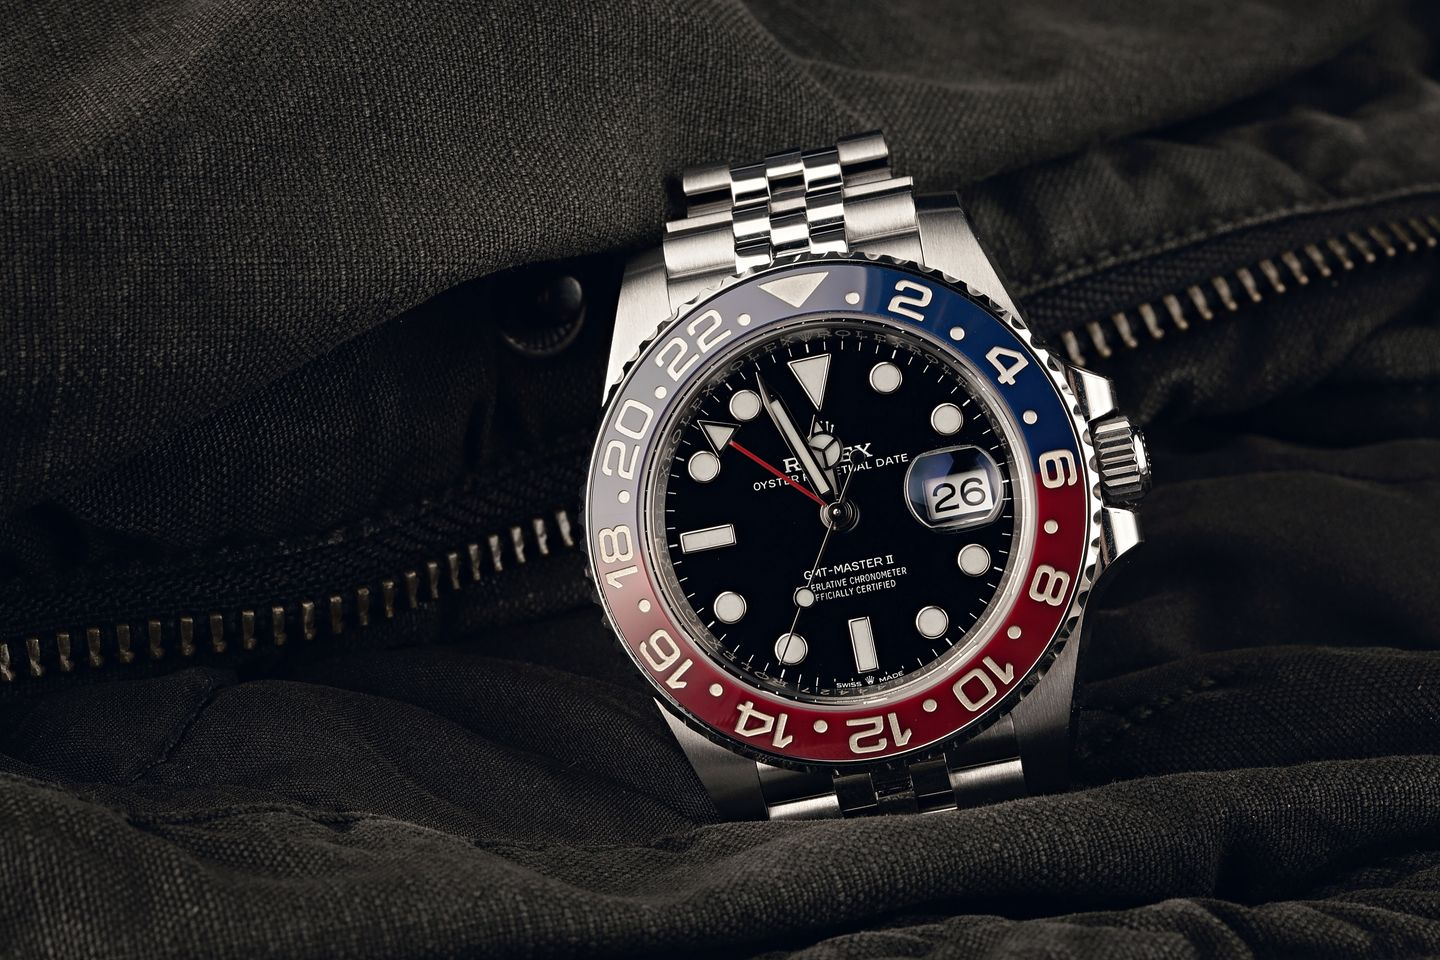 Top 3 Things Buy Rolex Investment